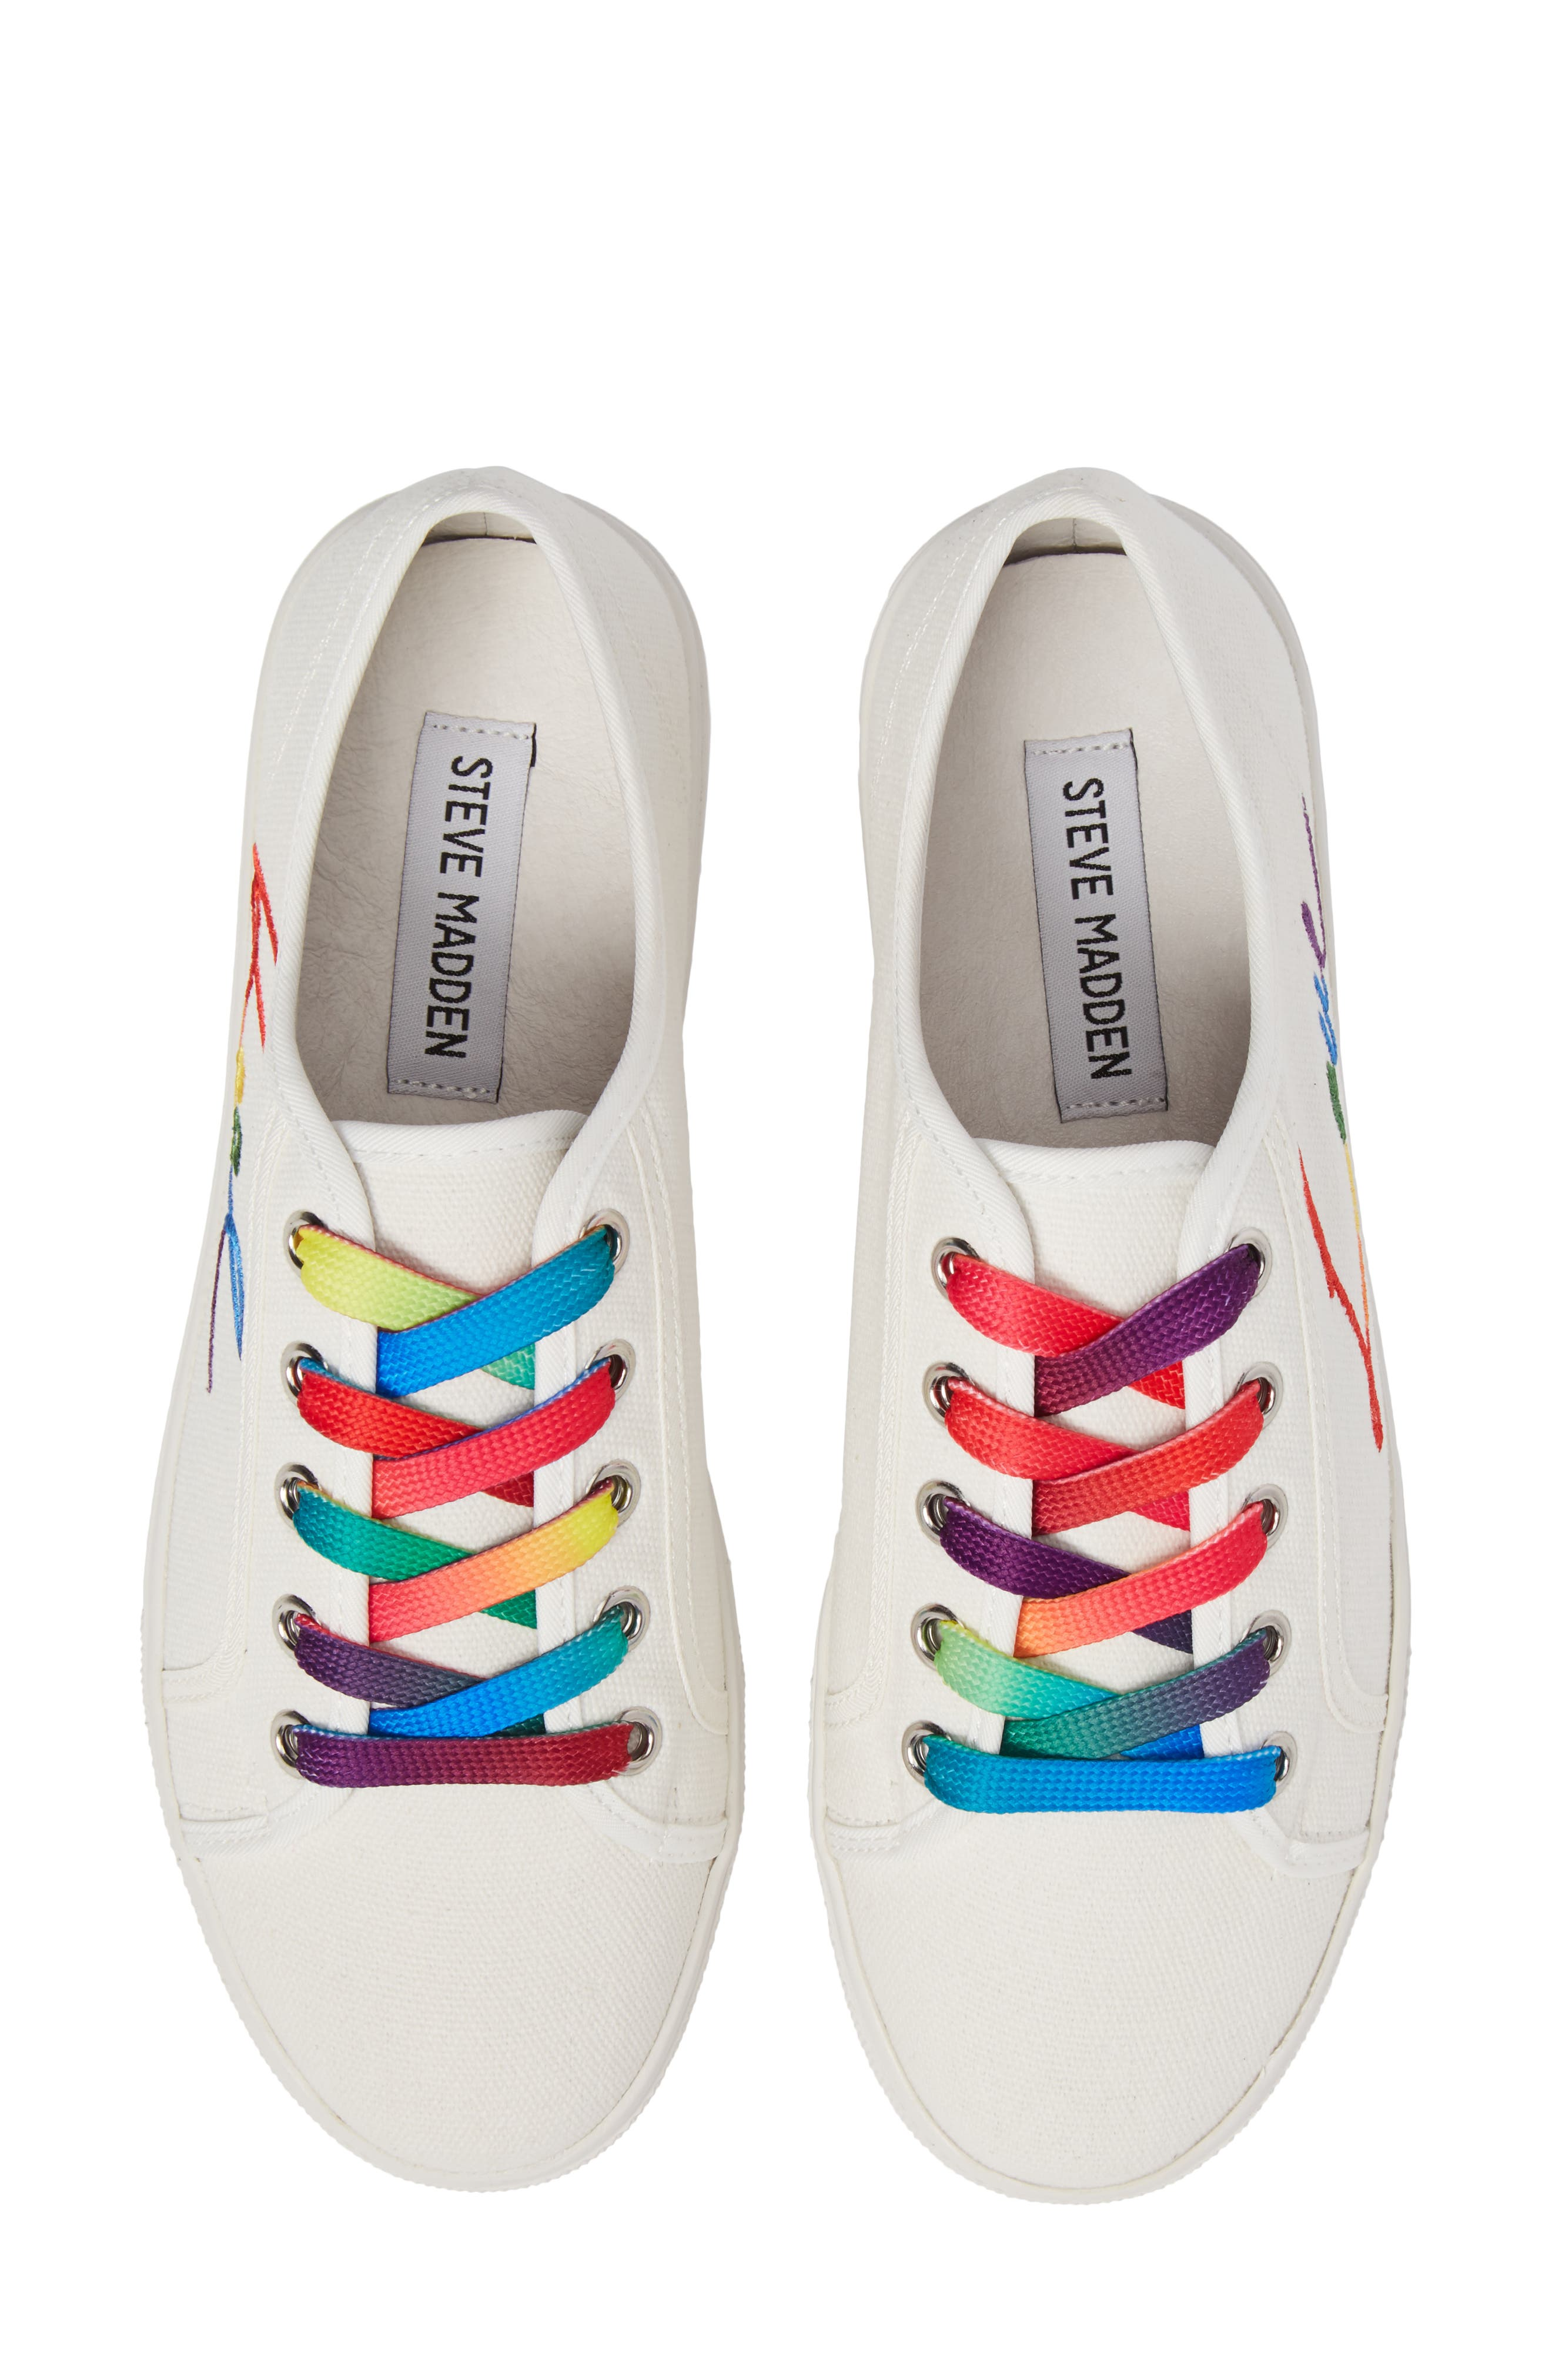 Fink Platform Sneaker,                             Alternate thumbnail 10, color,